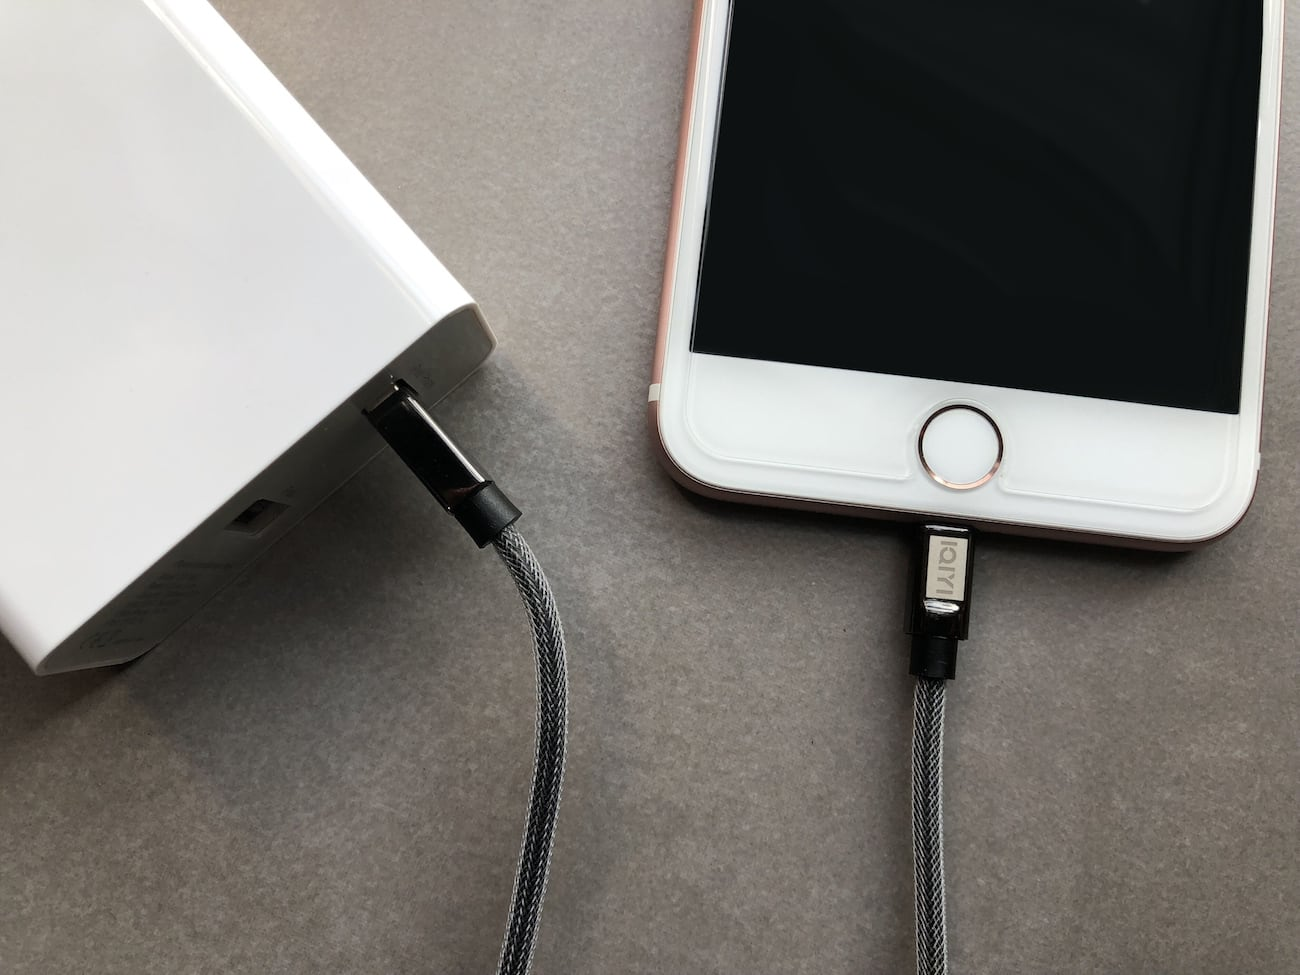 IQIYI Ultra Durable Lightning USB Cable